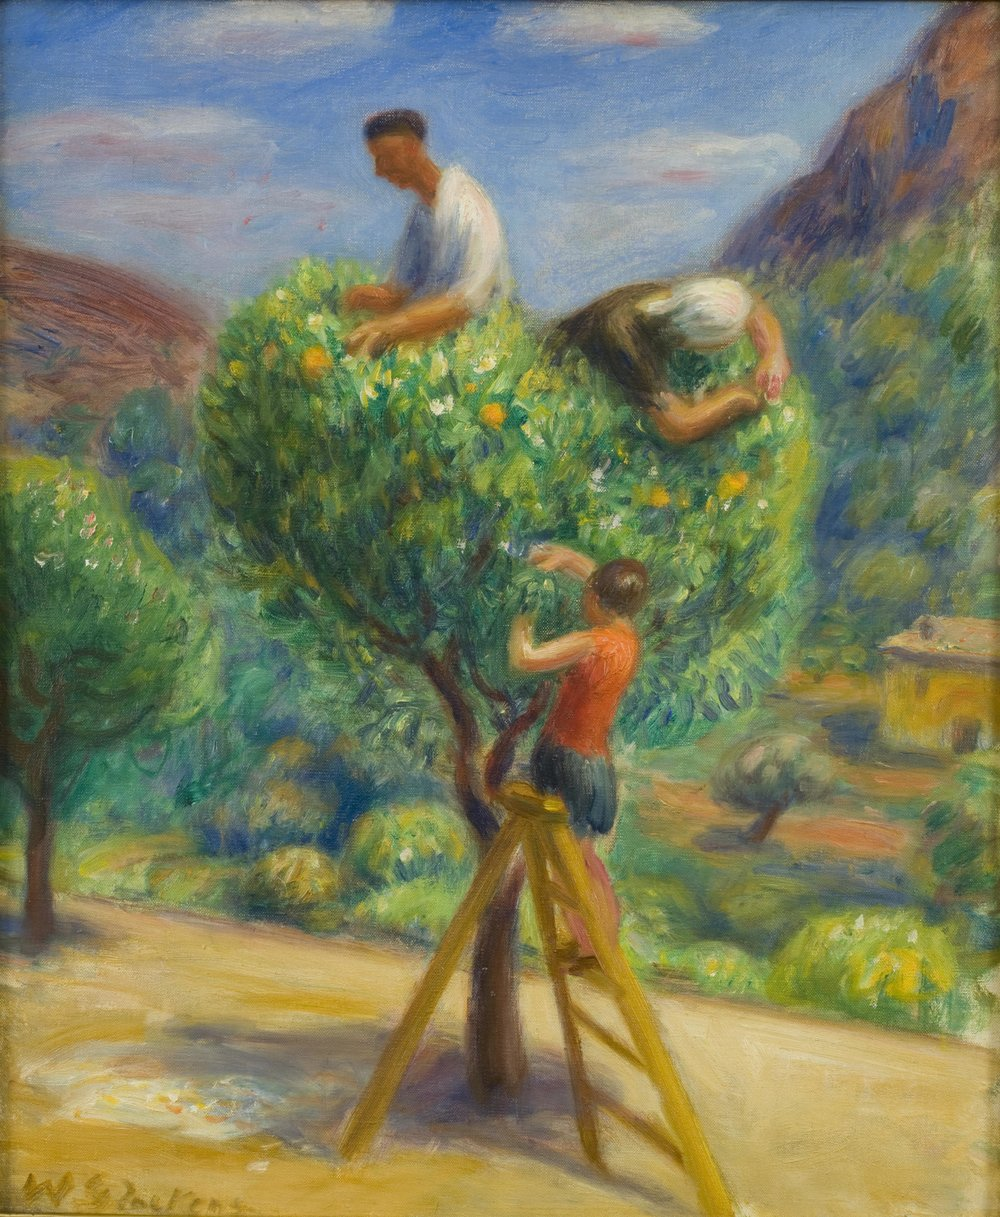 Glackens, Picking Fruit